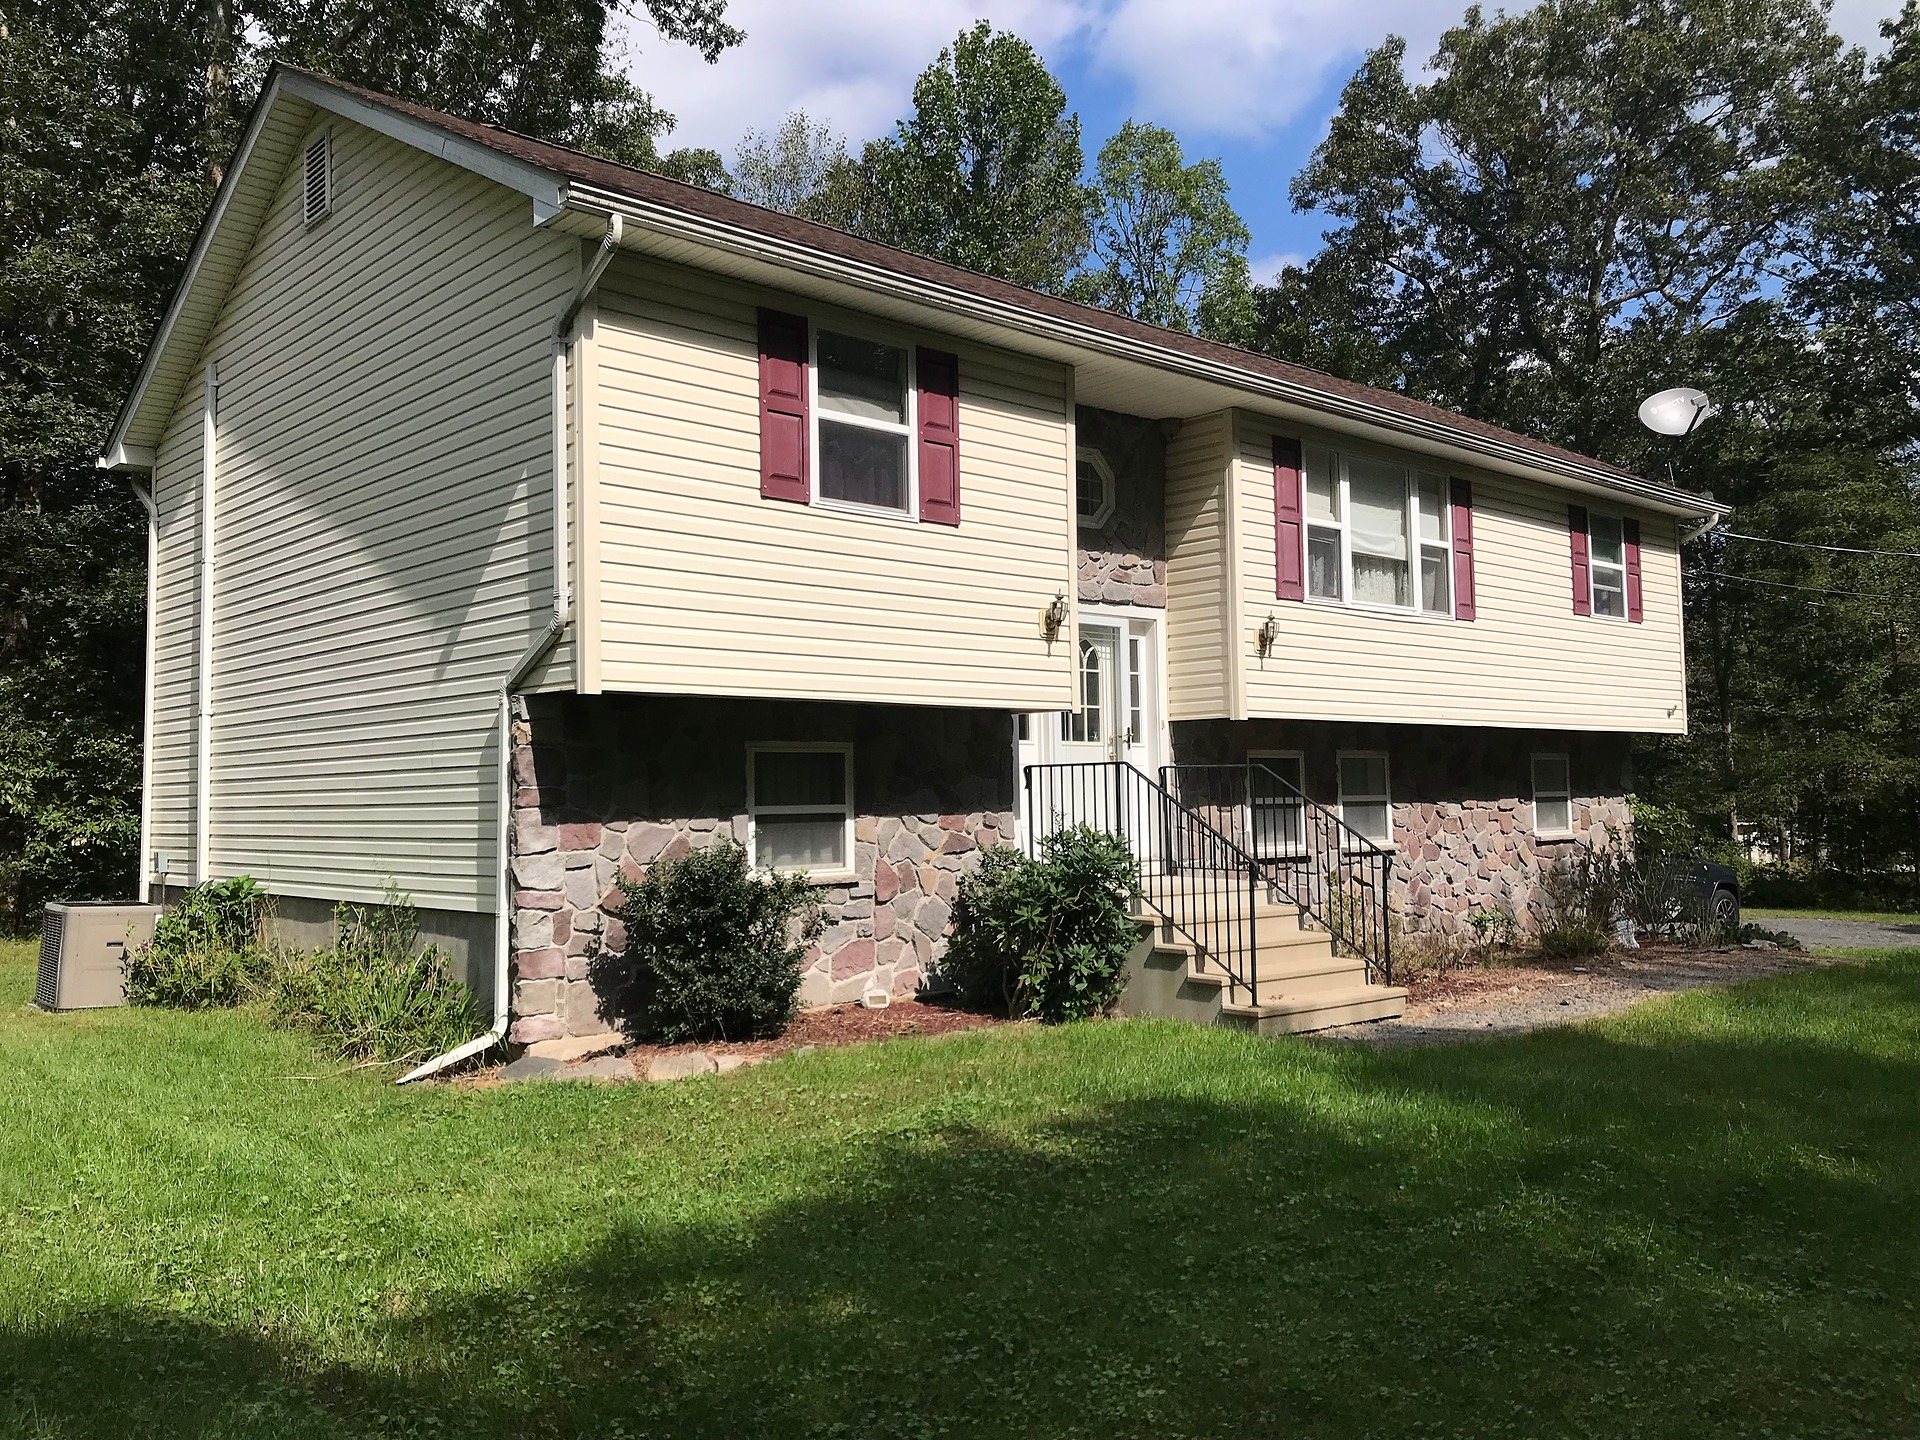 East Stroudsburg - 3 Bedroom 3 Bath $99,900